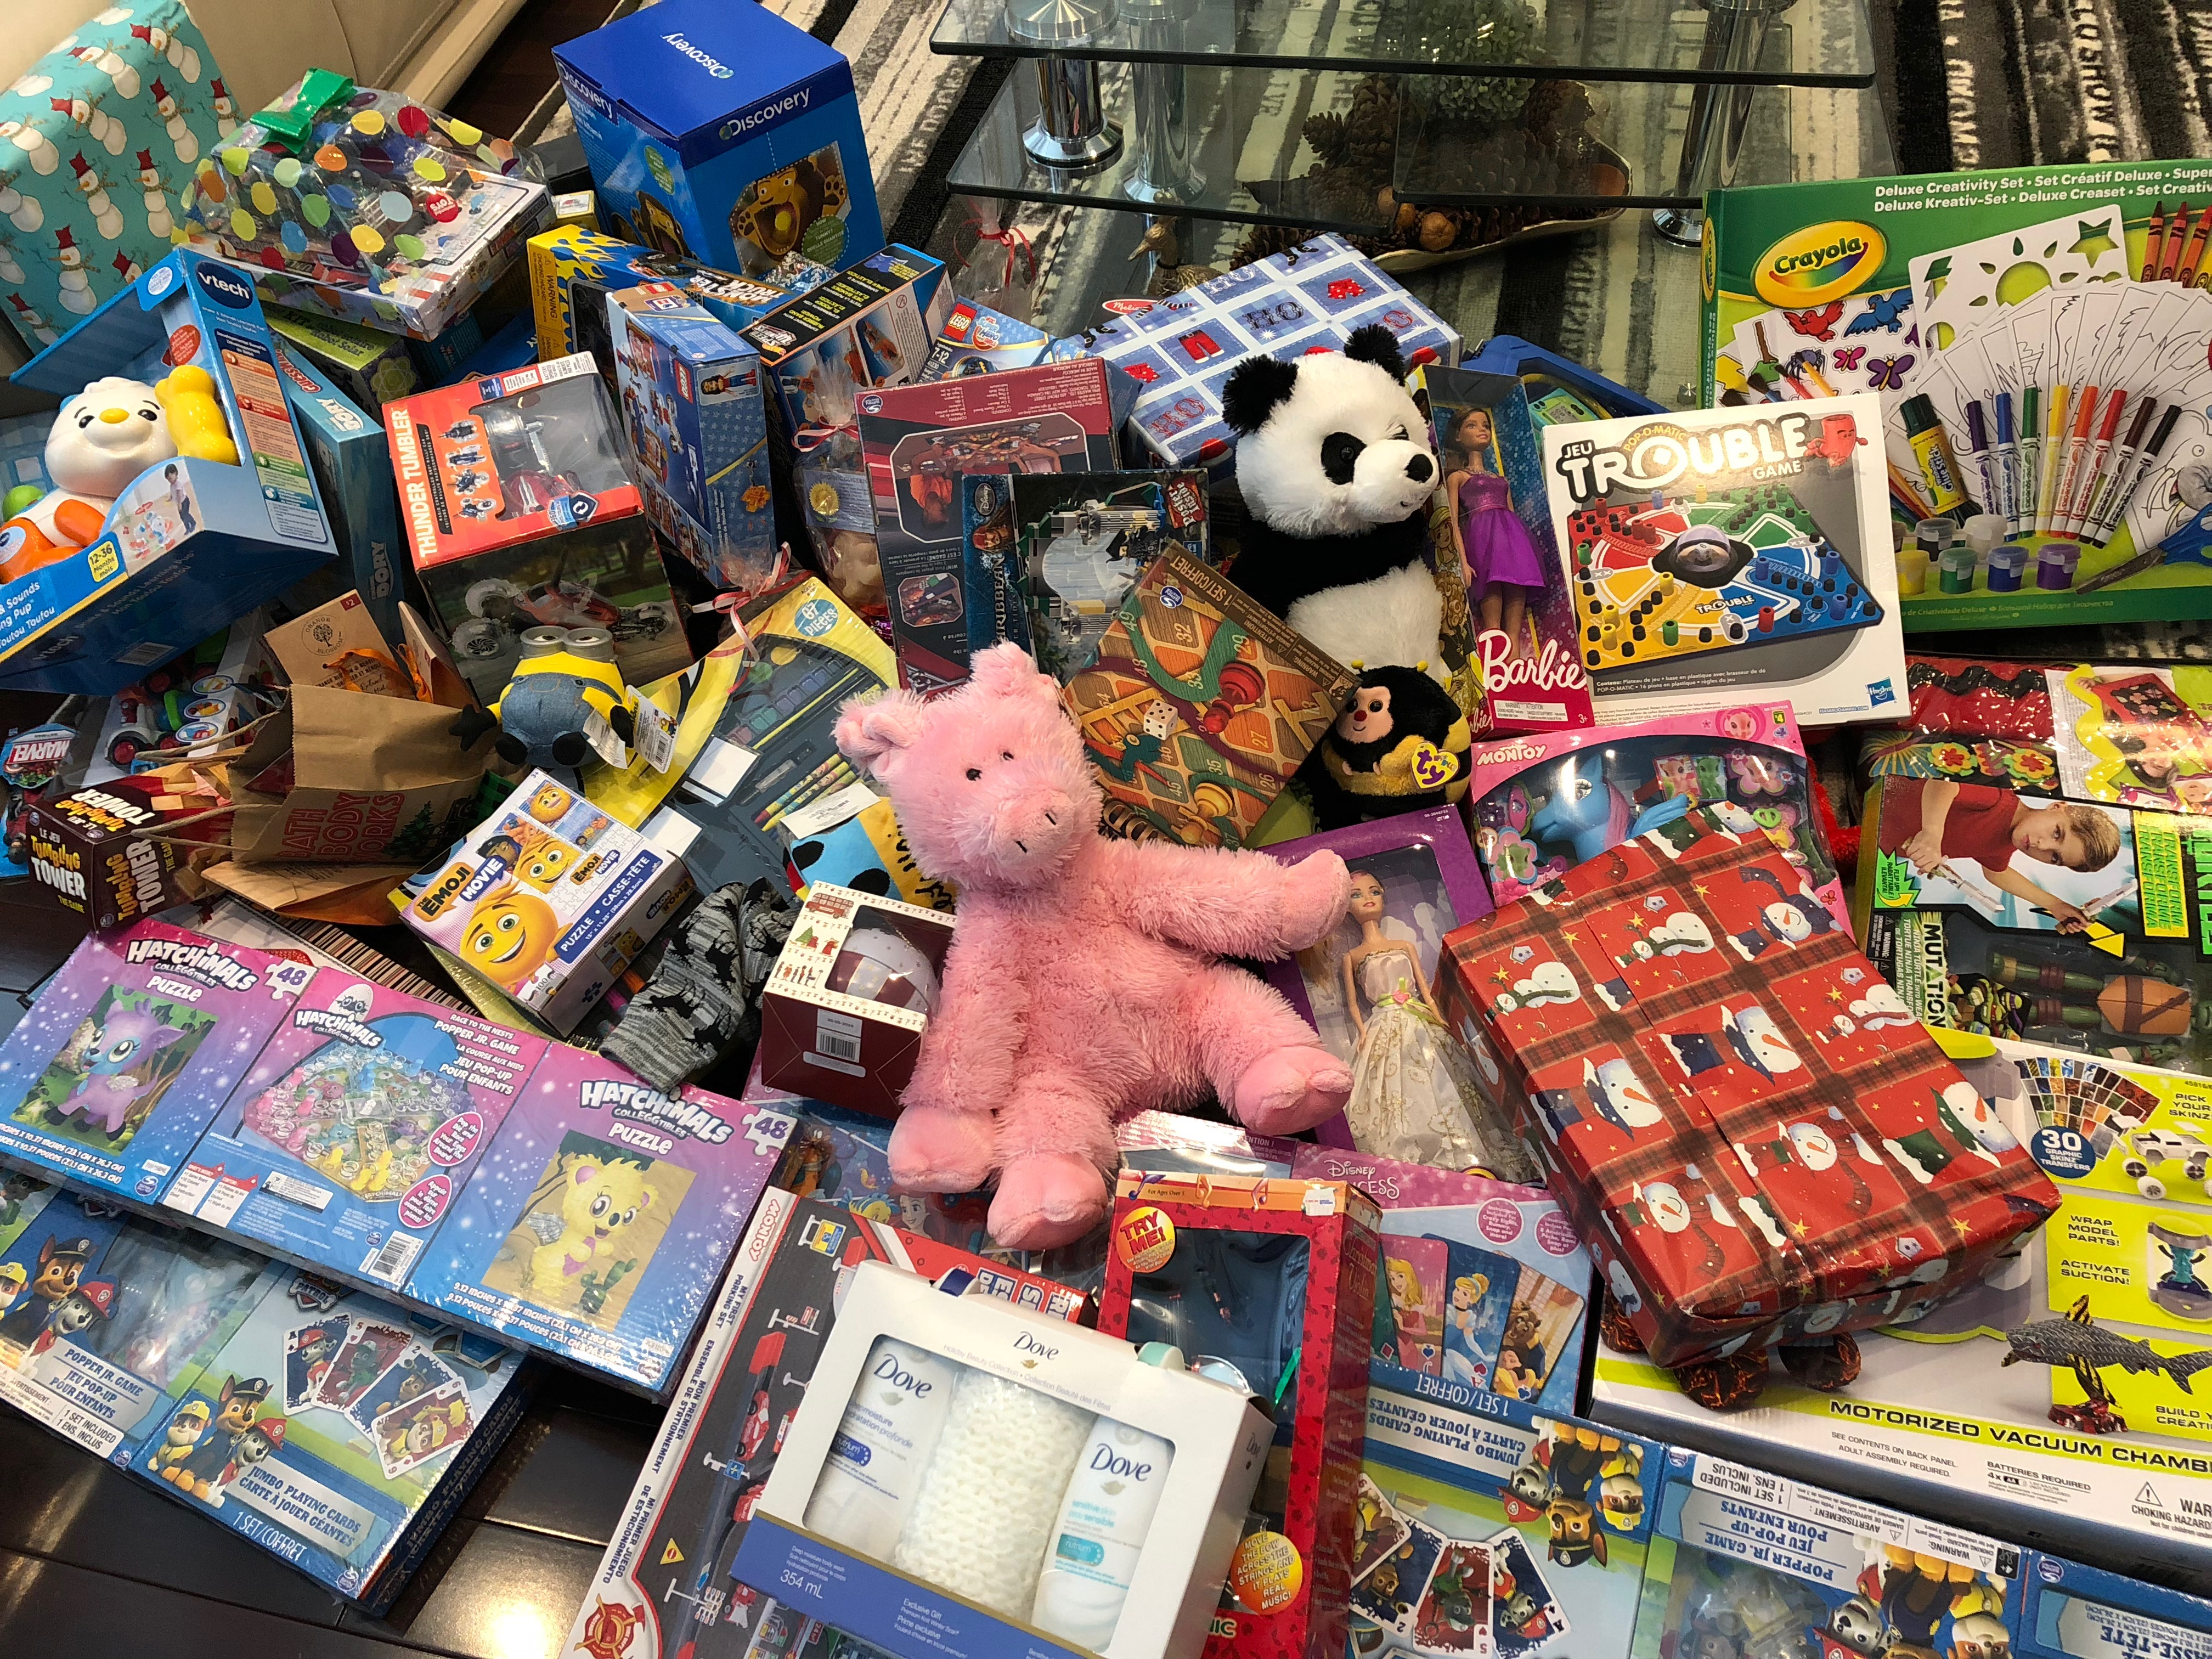 DEENA RIZWAN and TOYS for TOTS Helping children in the community